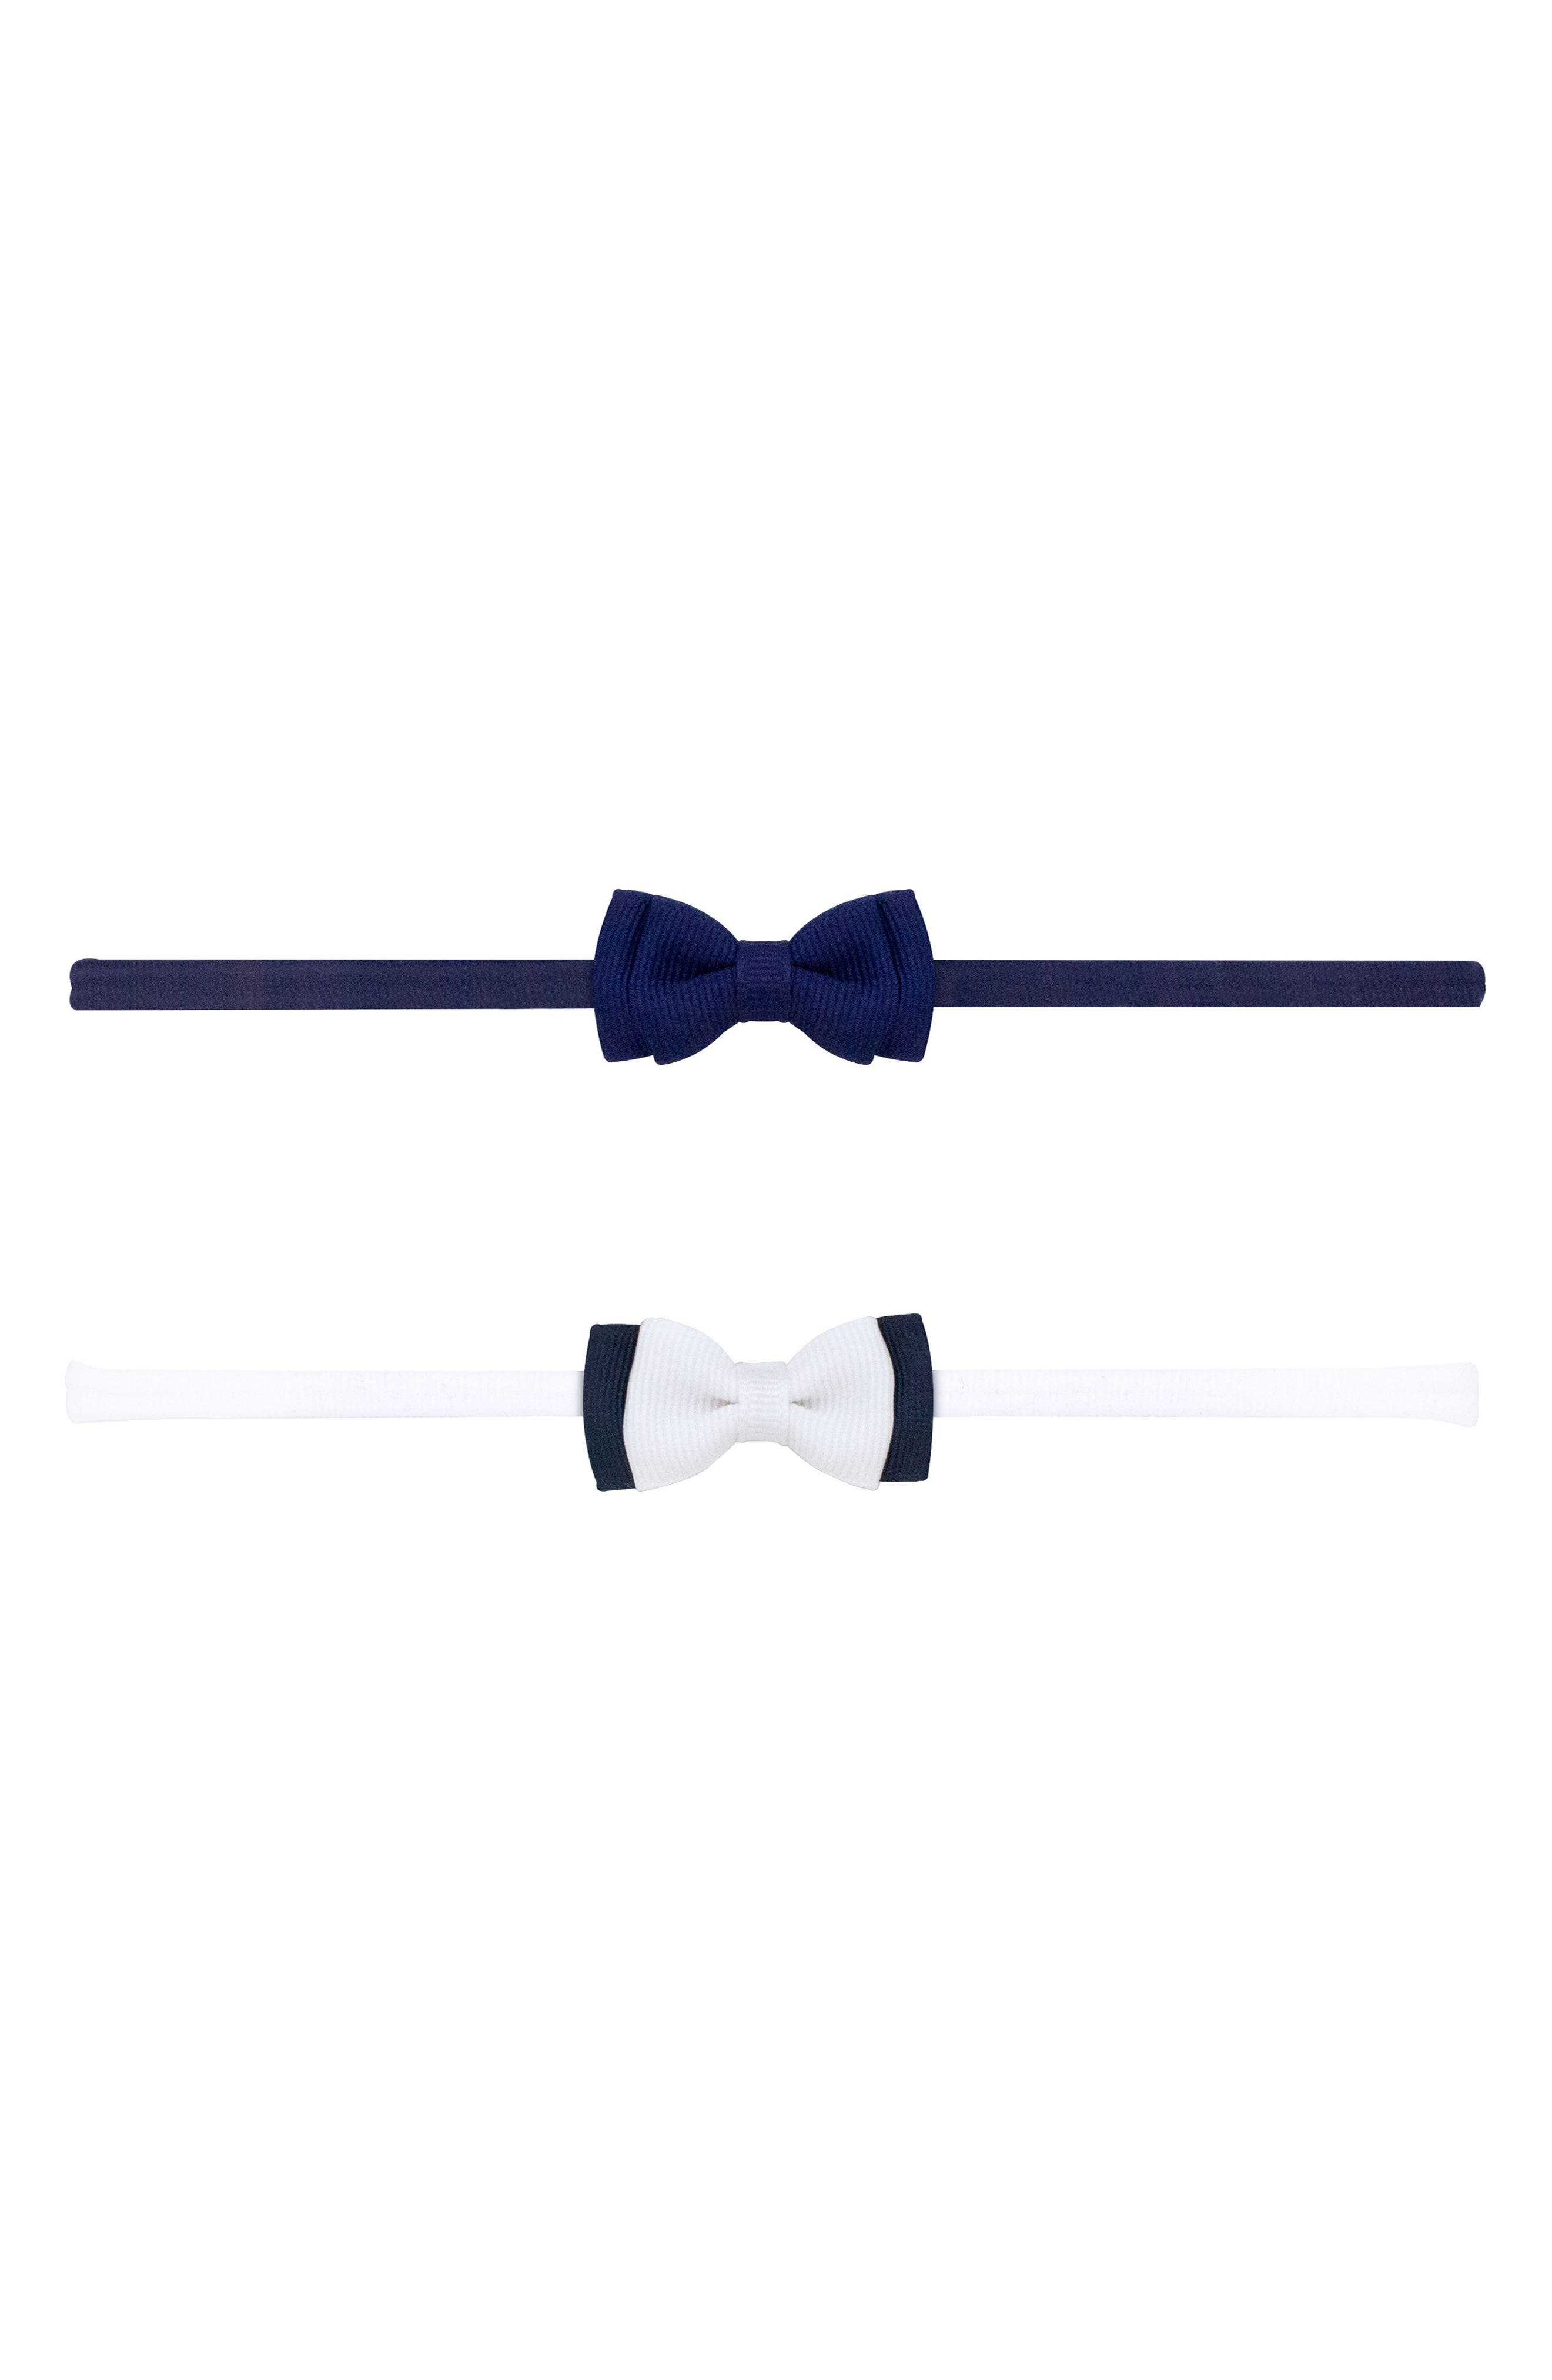 2-Pack Bow Headbands,                             Main thumbnail 1, color,                             480